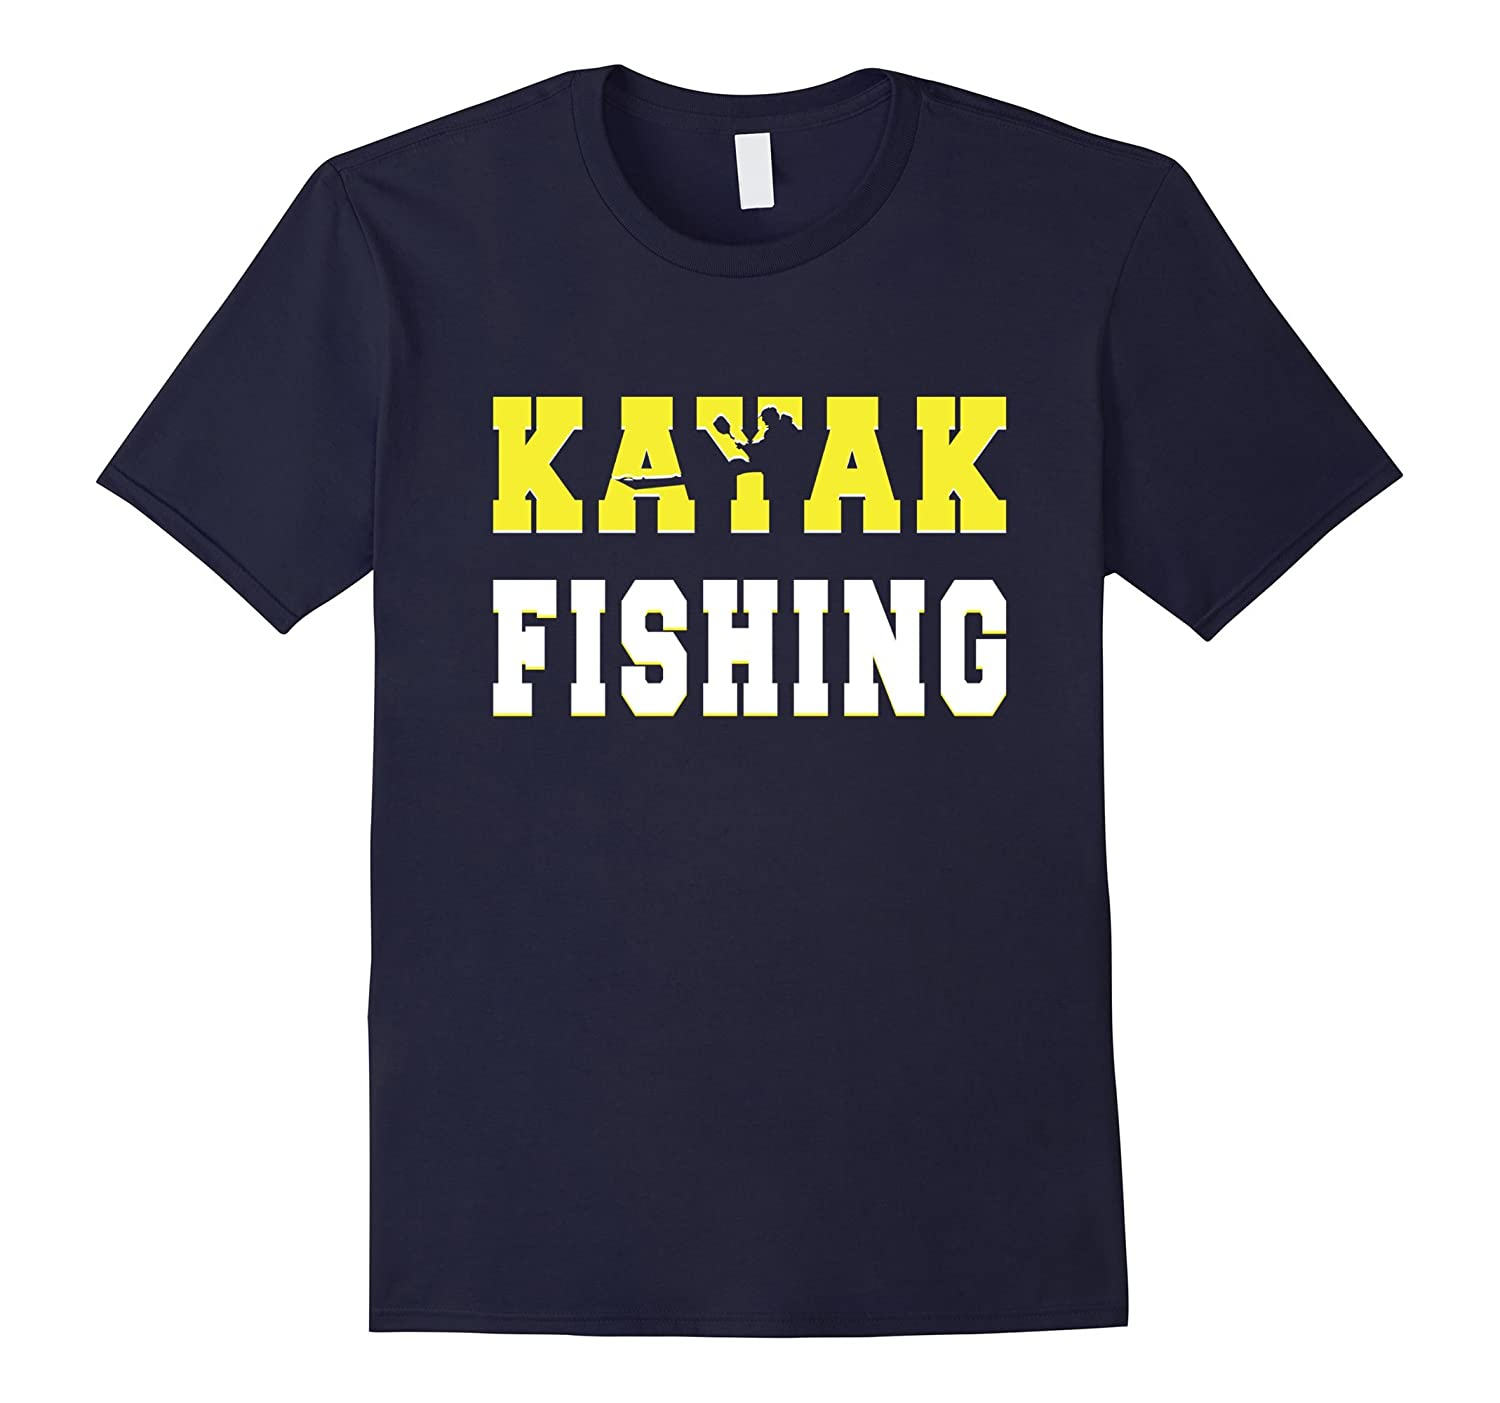 Kayak Fishing Shirt for Those who Love the Outdoors-TH